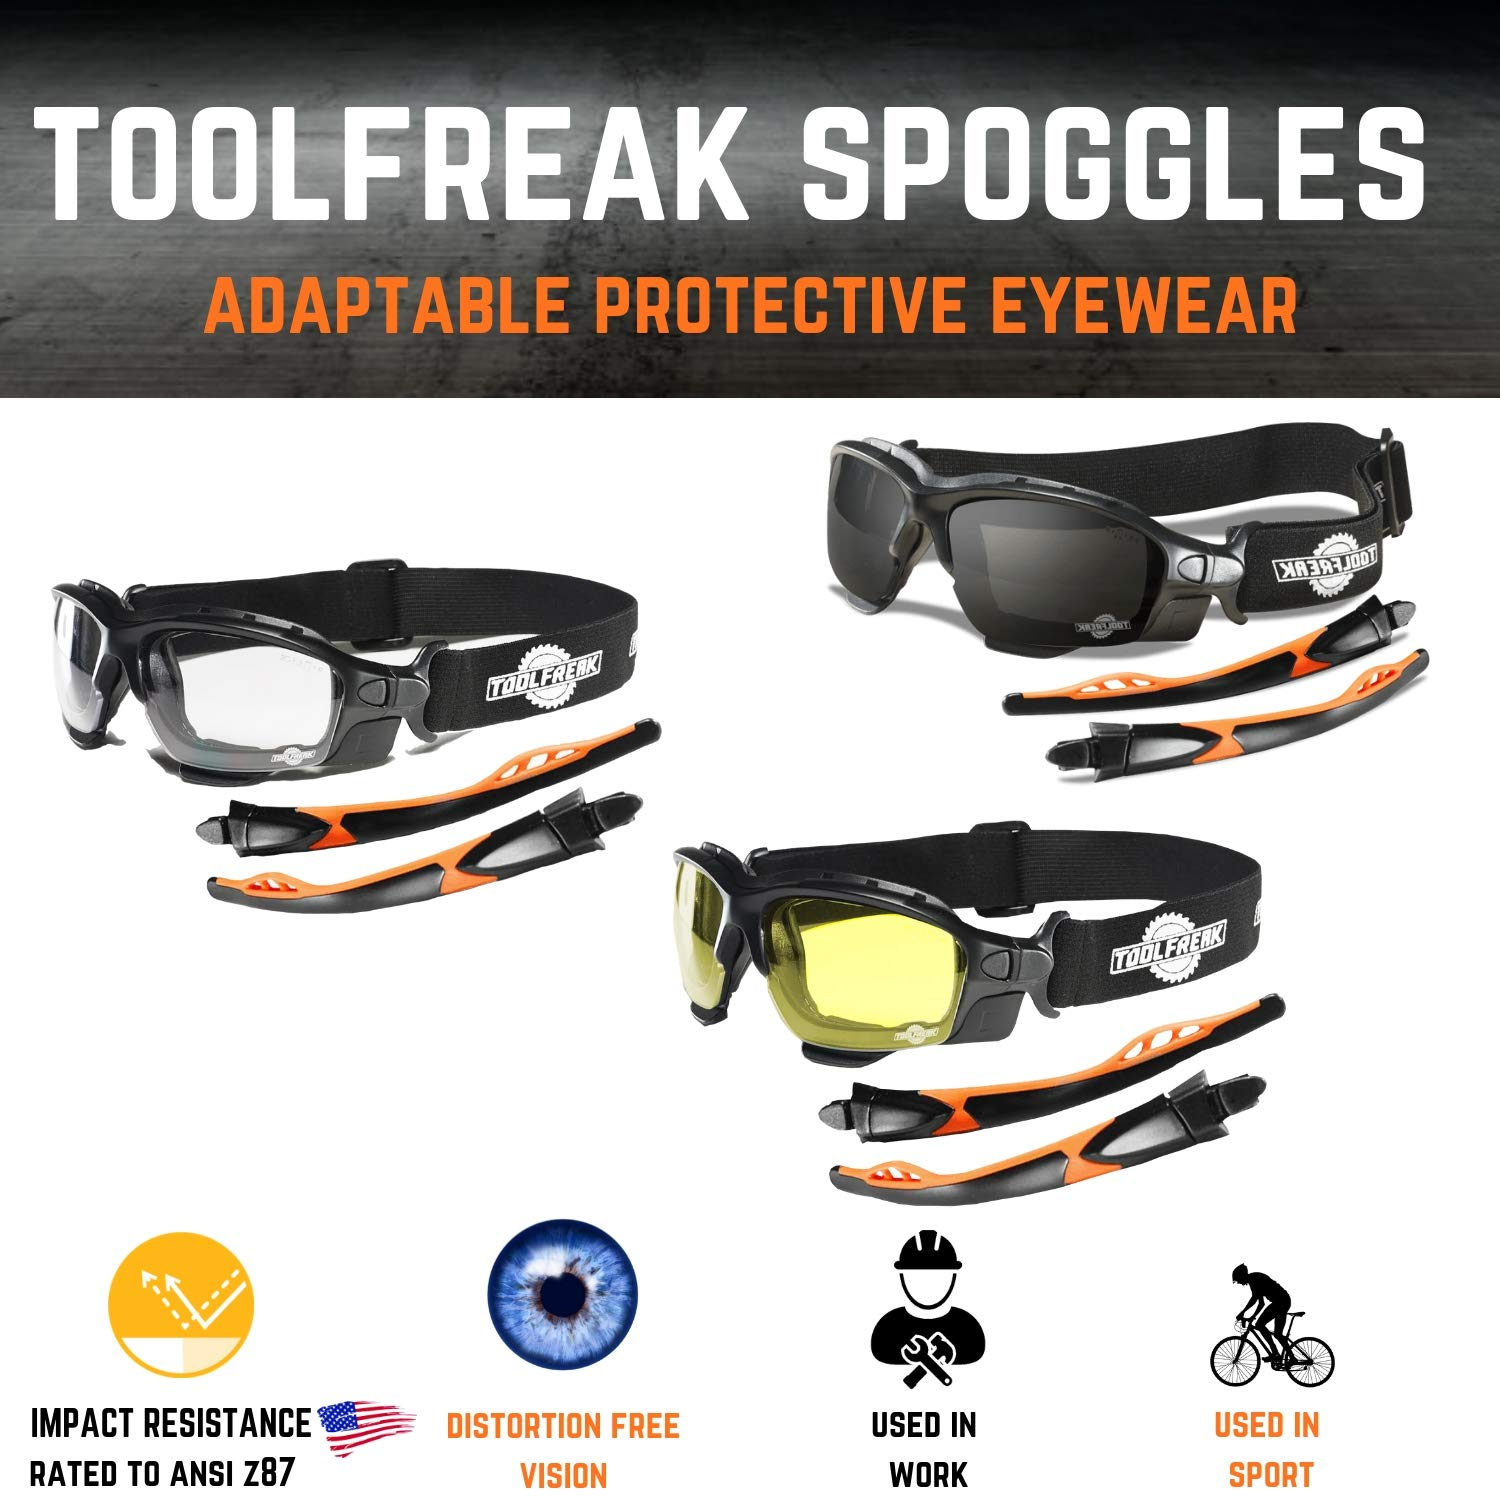 ToolFreak Spoggles Work and Sports Safety Glasses, Clear, Smoke and Yellow Tinted Lens Mega Bundle Offer, Foam Padded, ANSI z87 Rated with Impact and UV Protection by ToolFreak (Image #5)